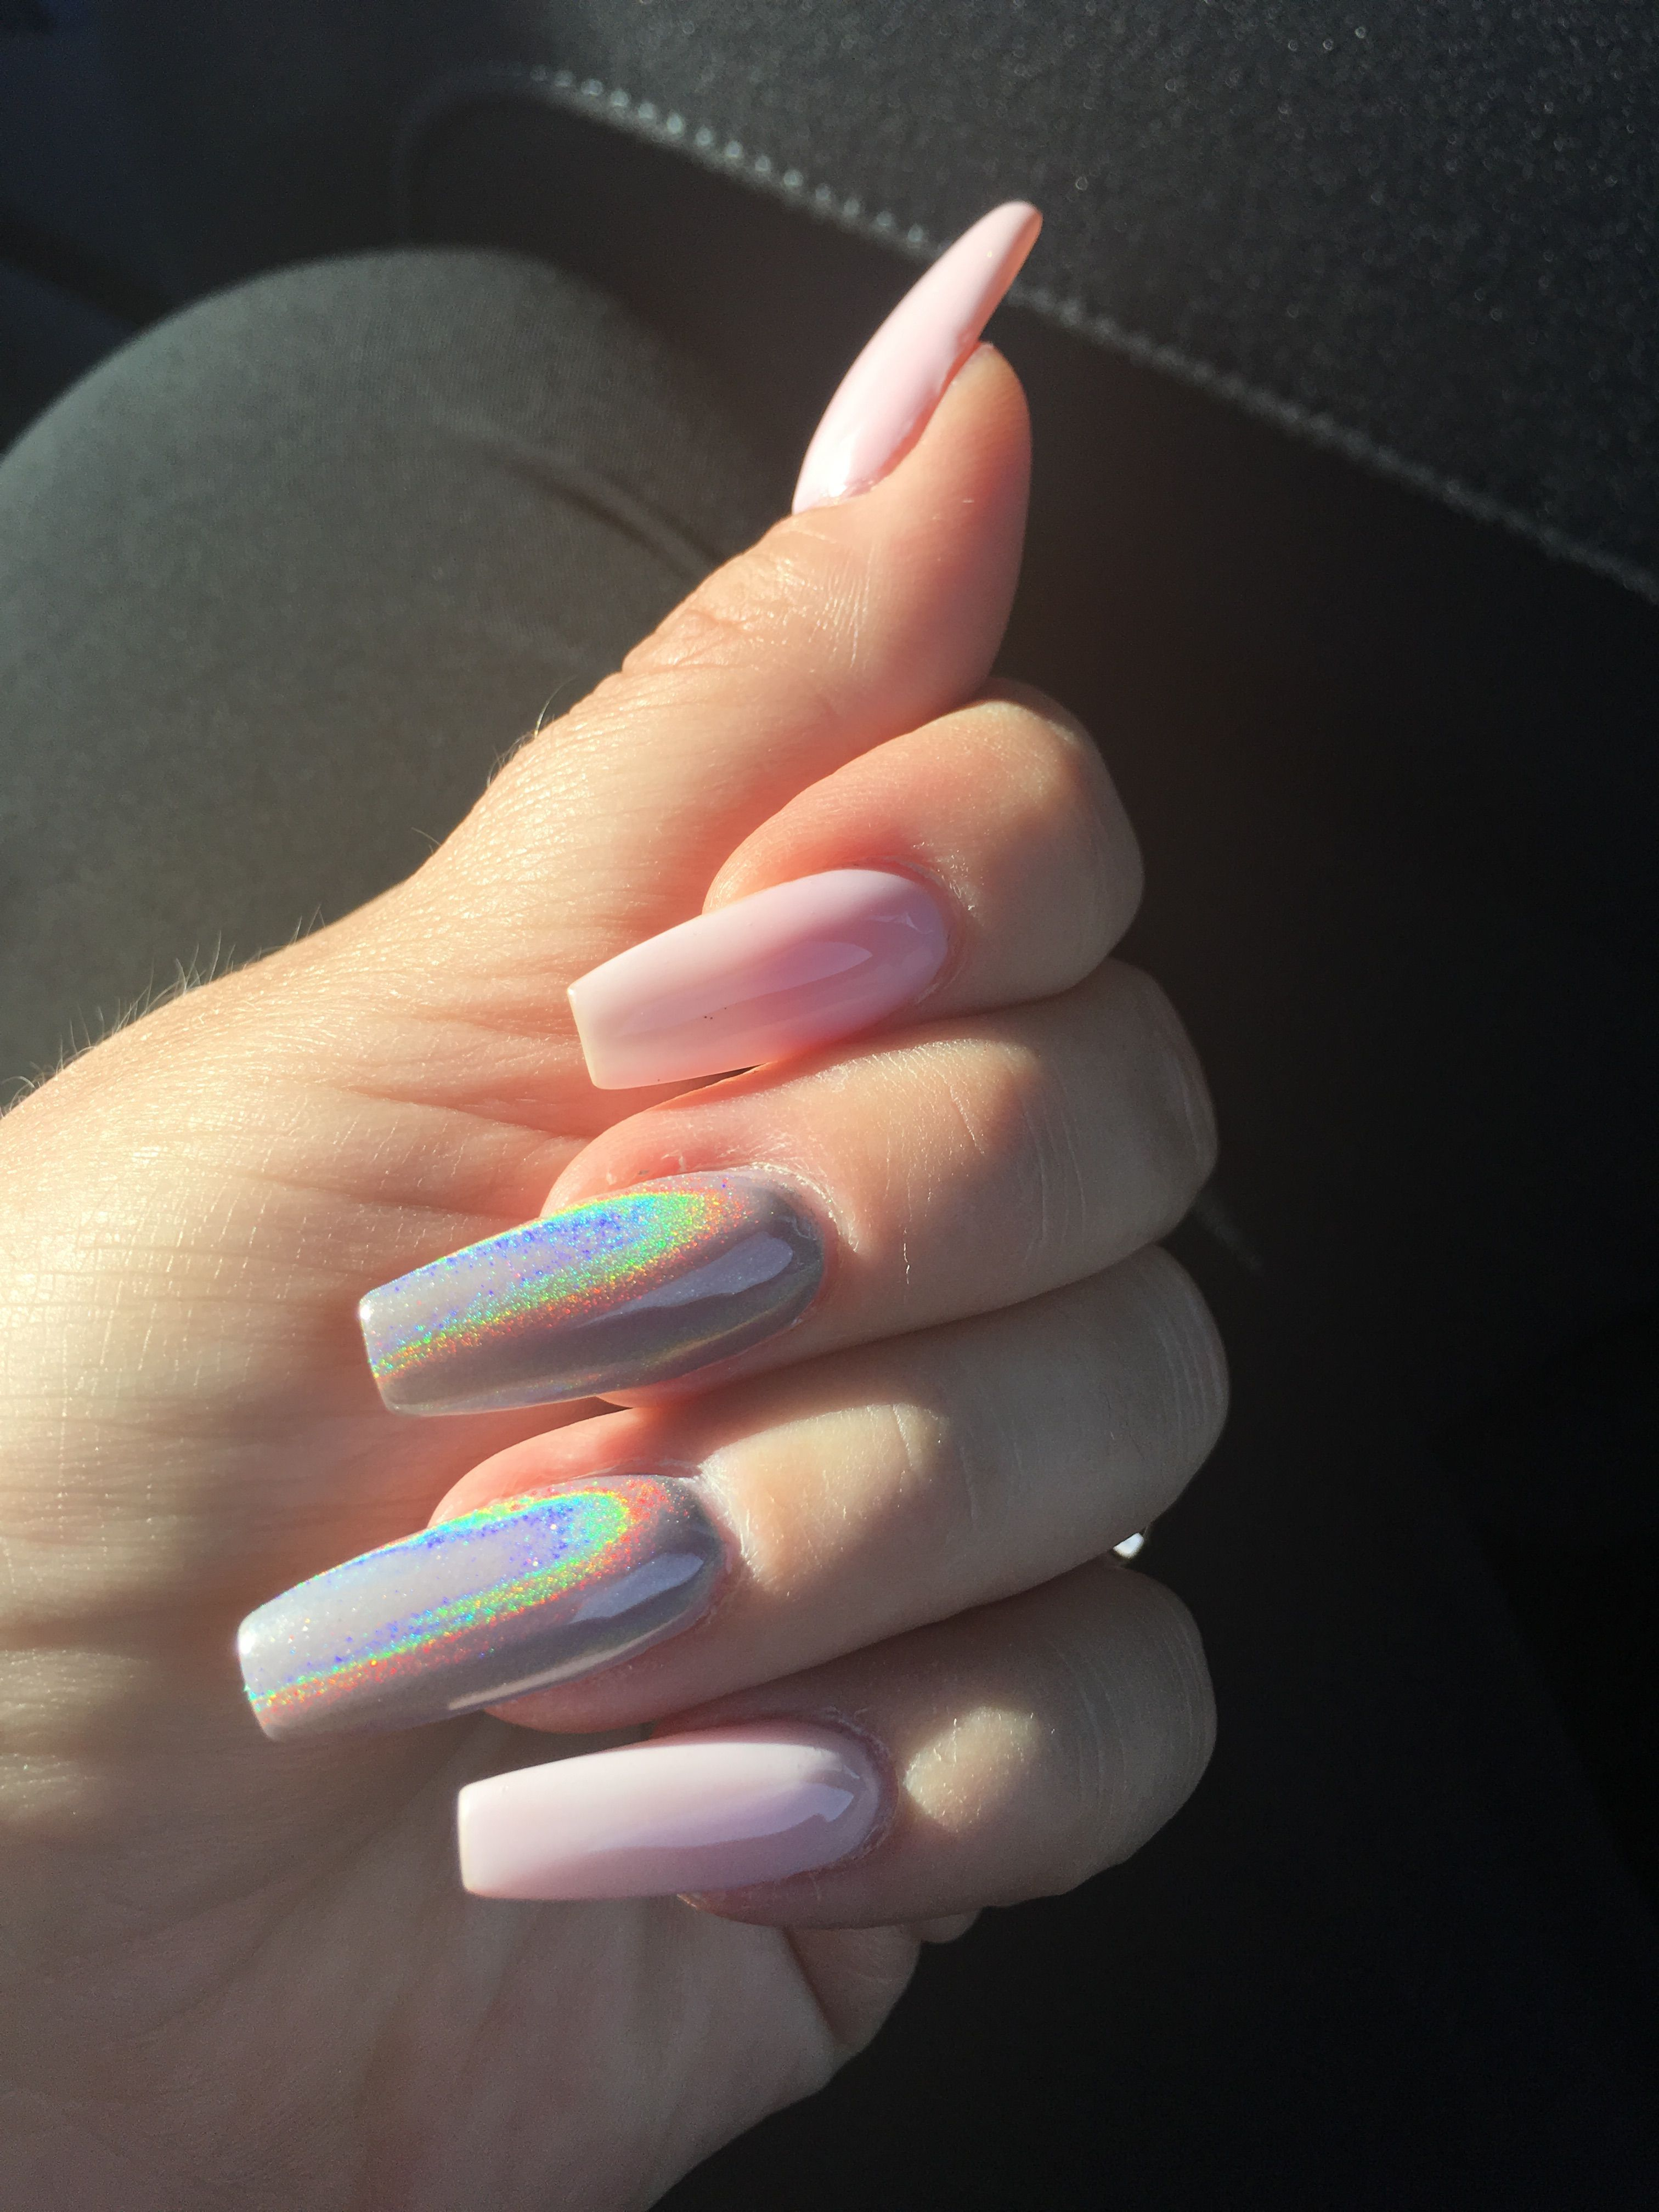 Iridescent Nails White Shellac With Holographic Glitter Holographic Nails Acrylic Holographic Glitter Nails Rave Nails